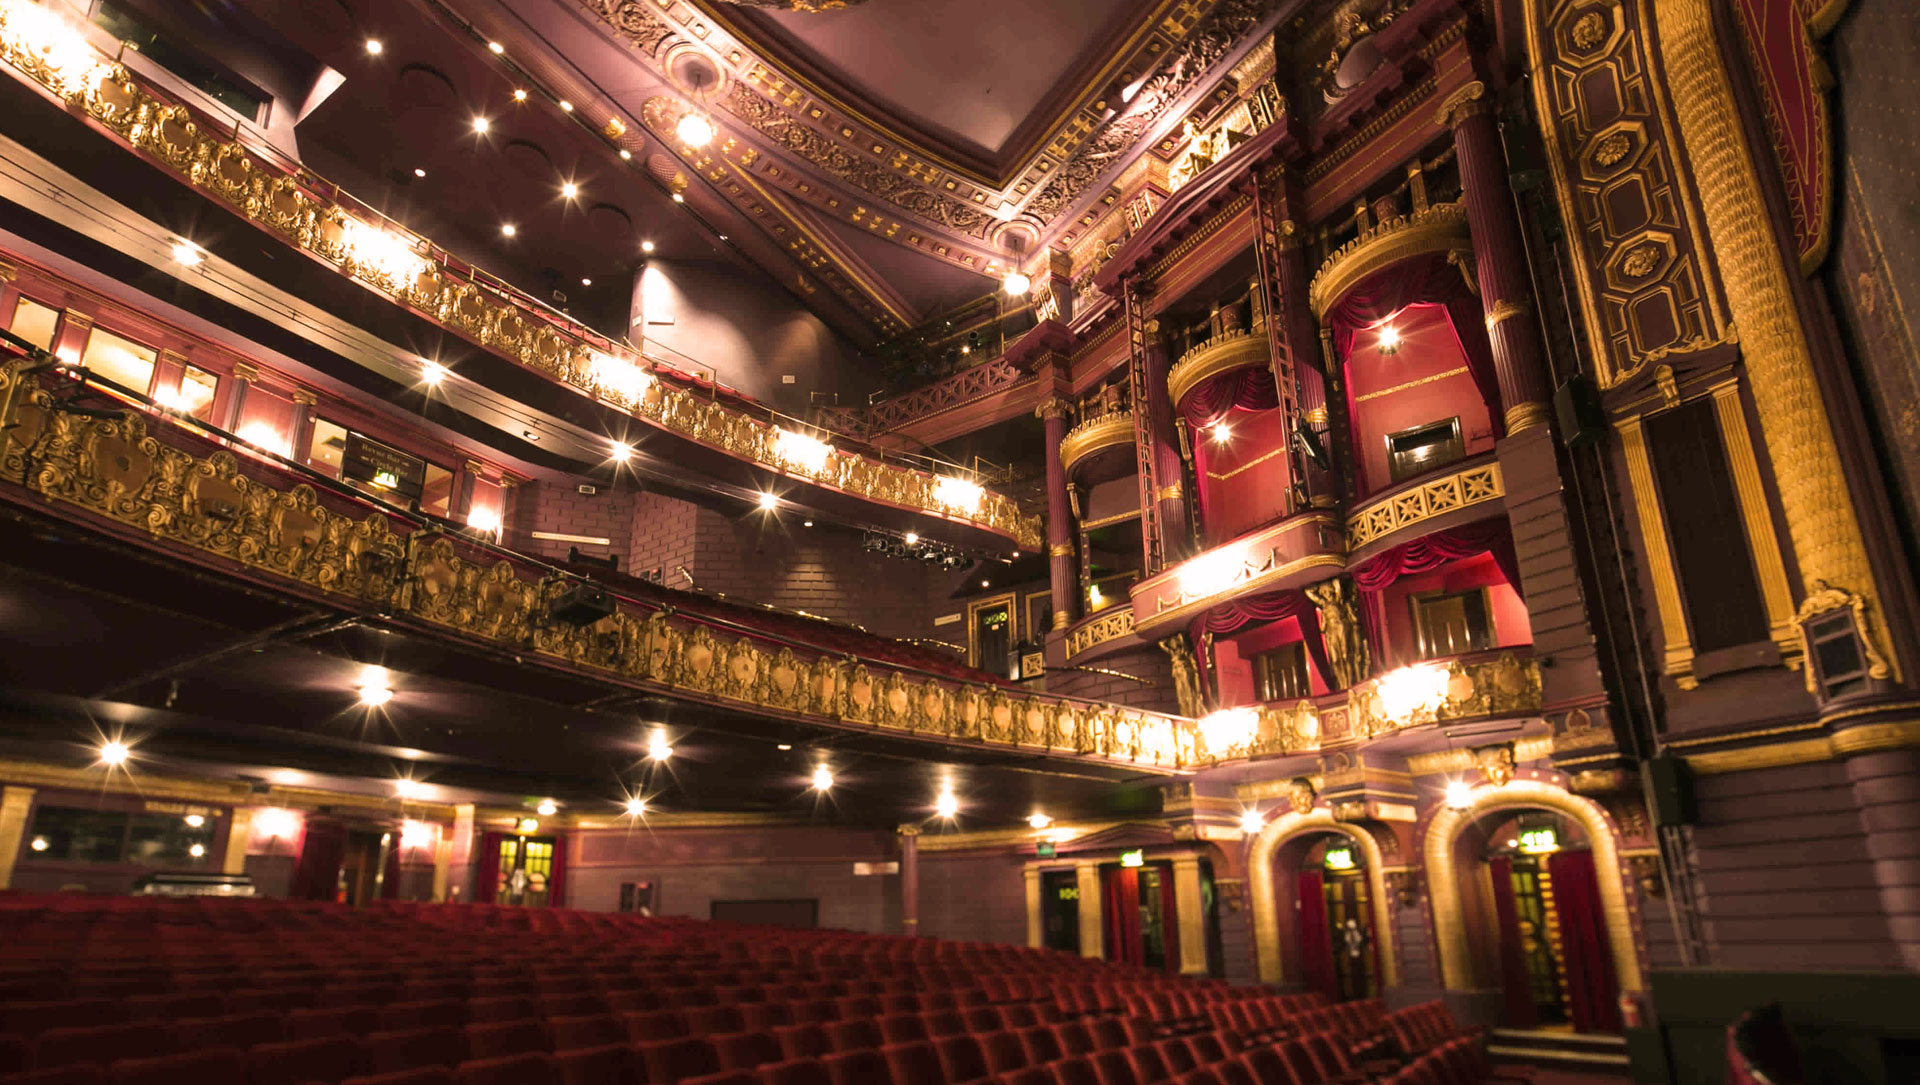 Internal image of Palace Theatre Manchester with lights on